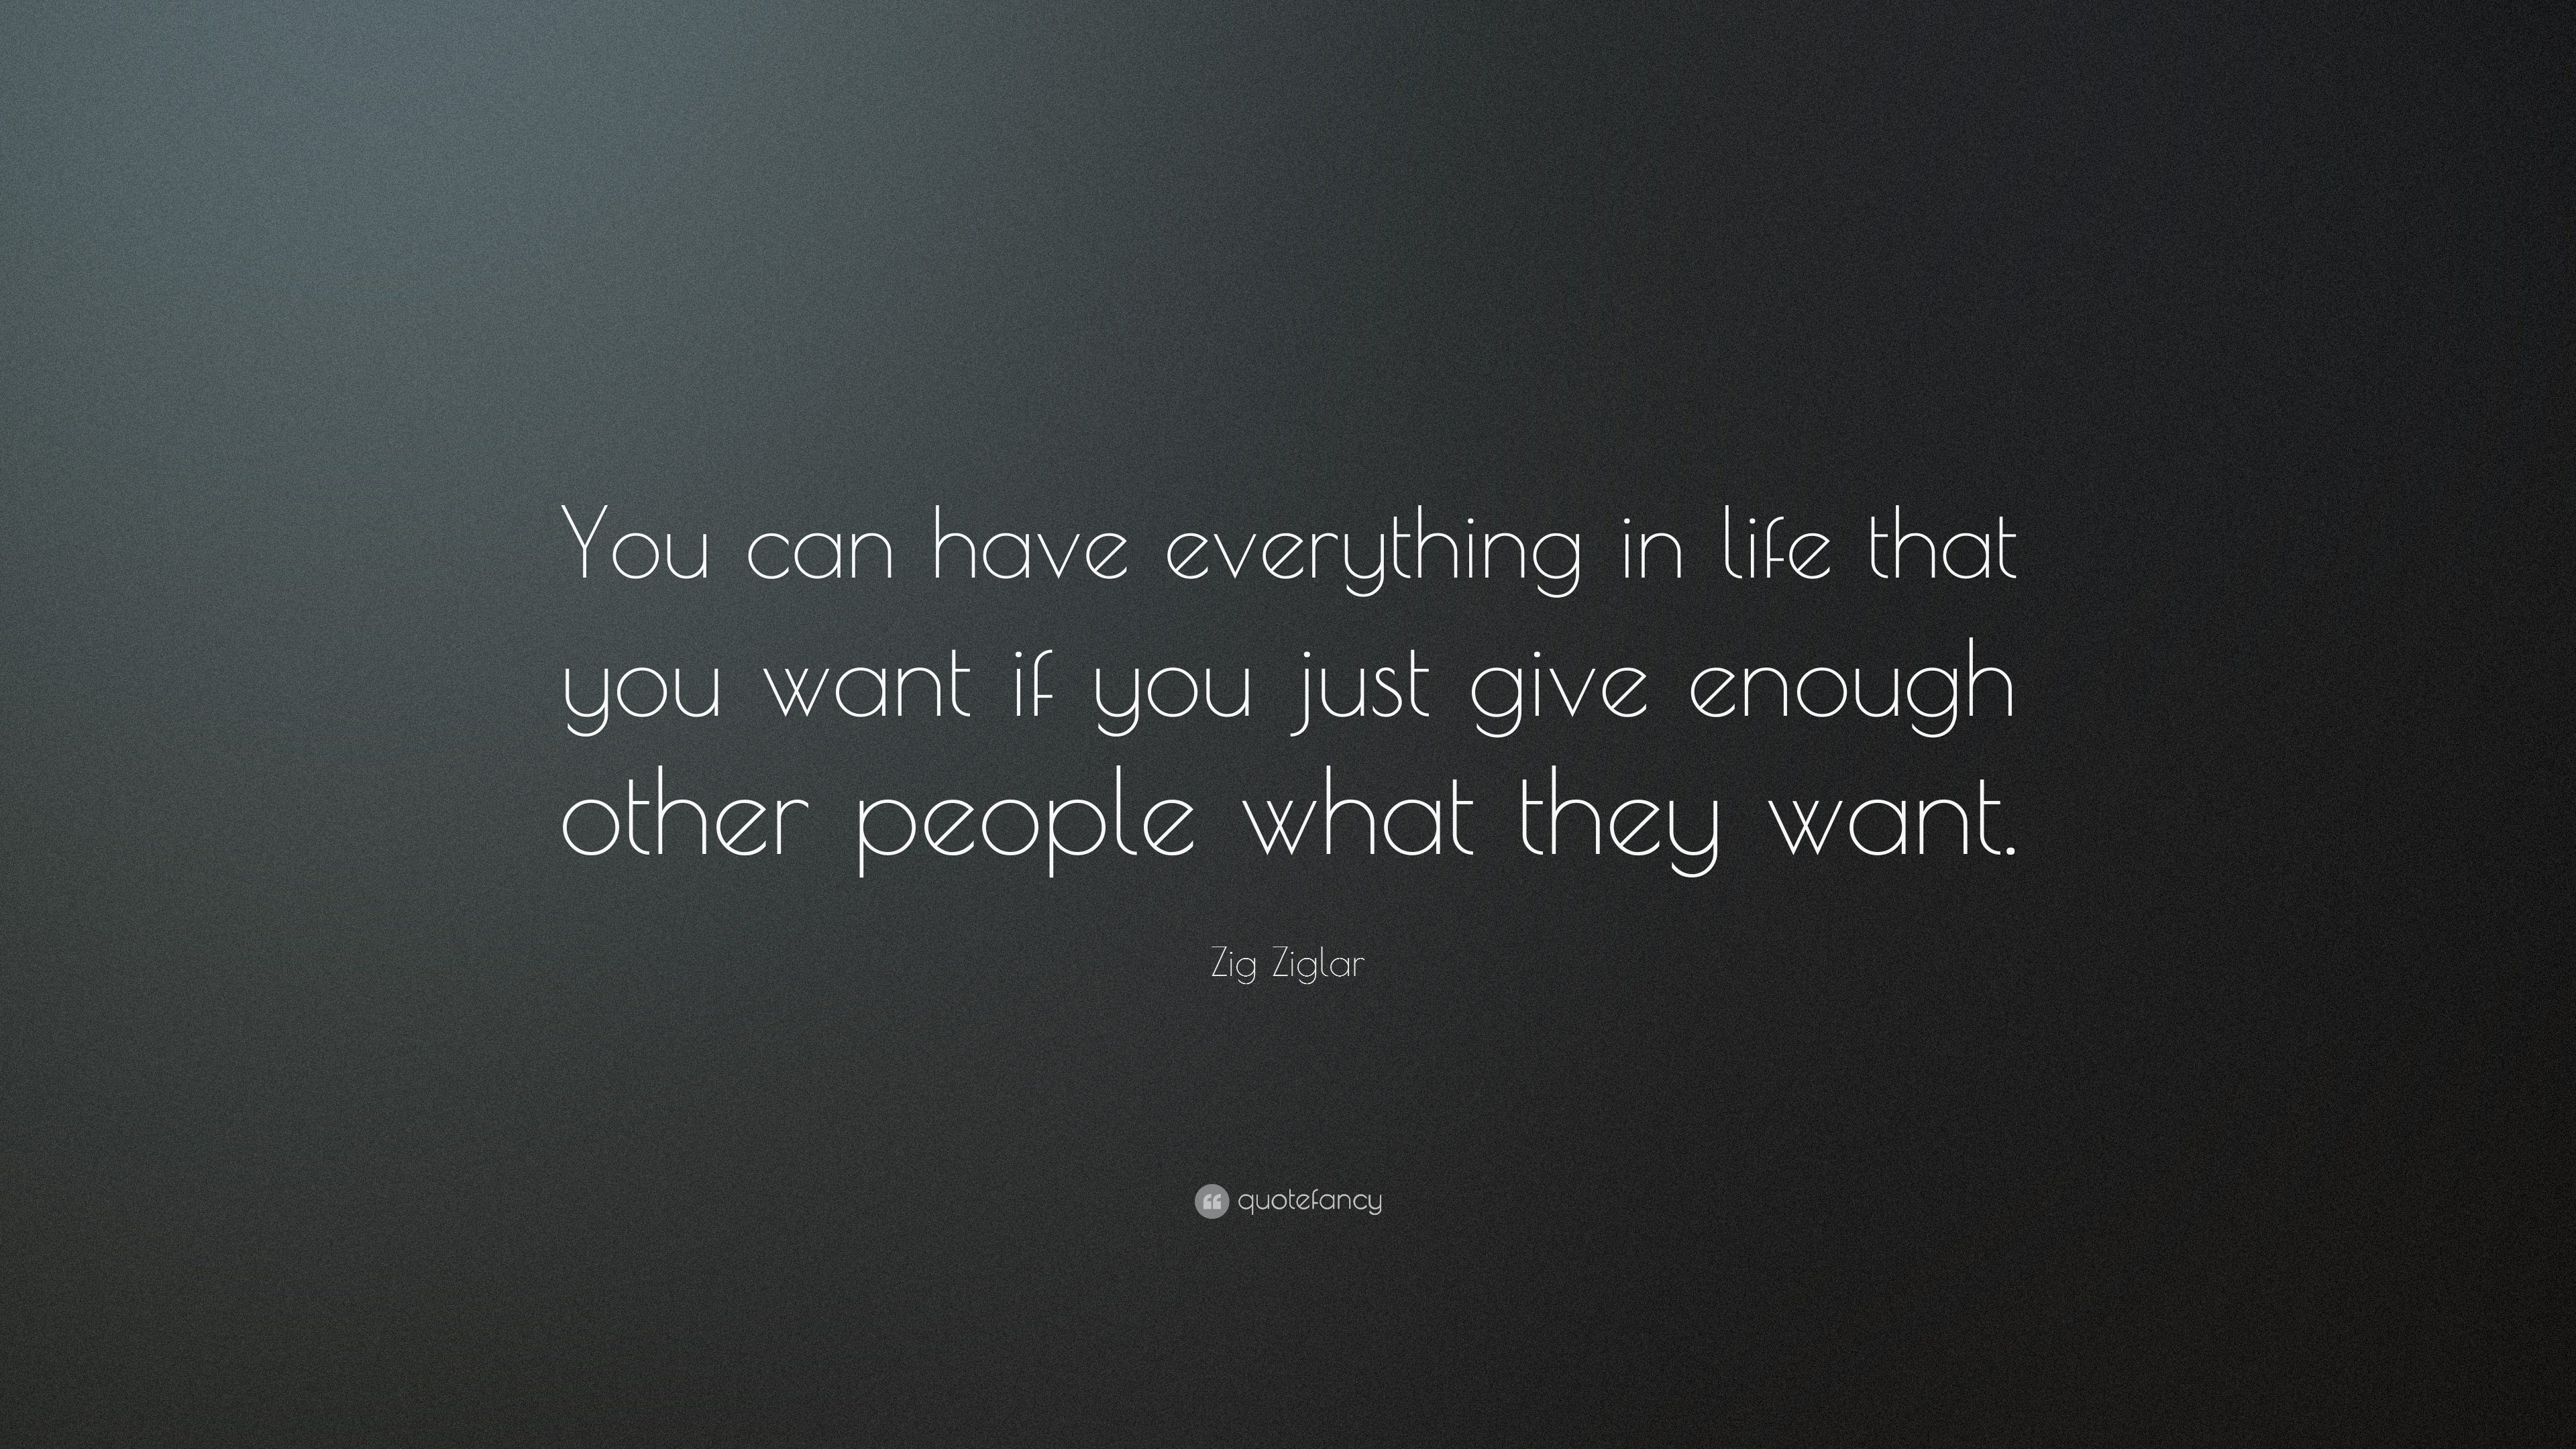 Zig Ziglar Quote You Can Have Everything In Life That You Want If